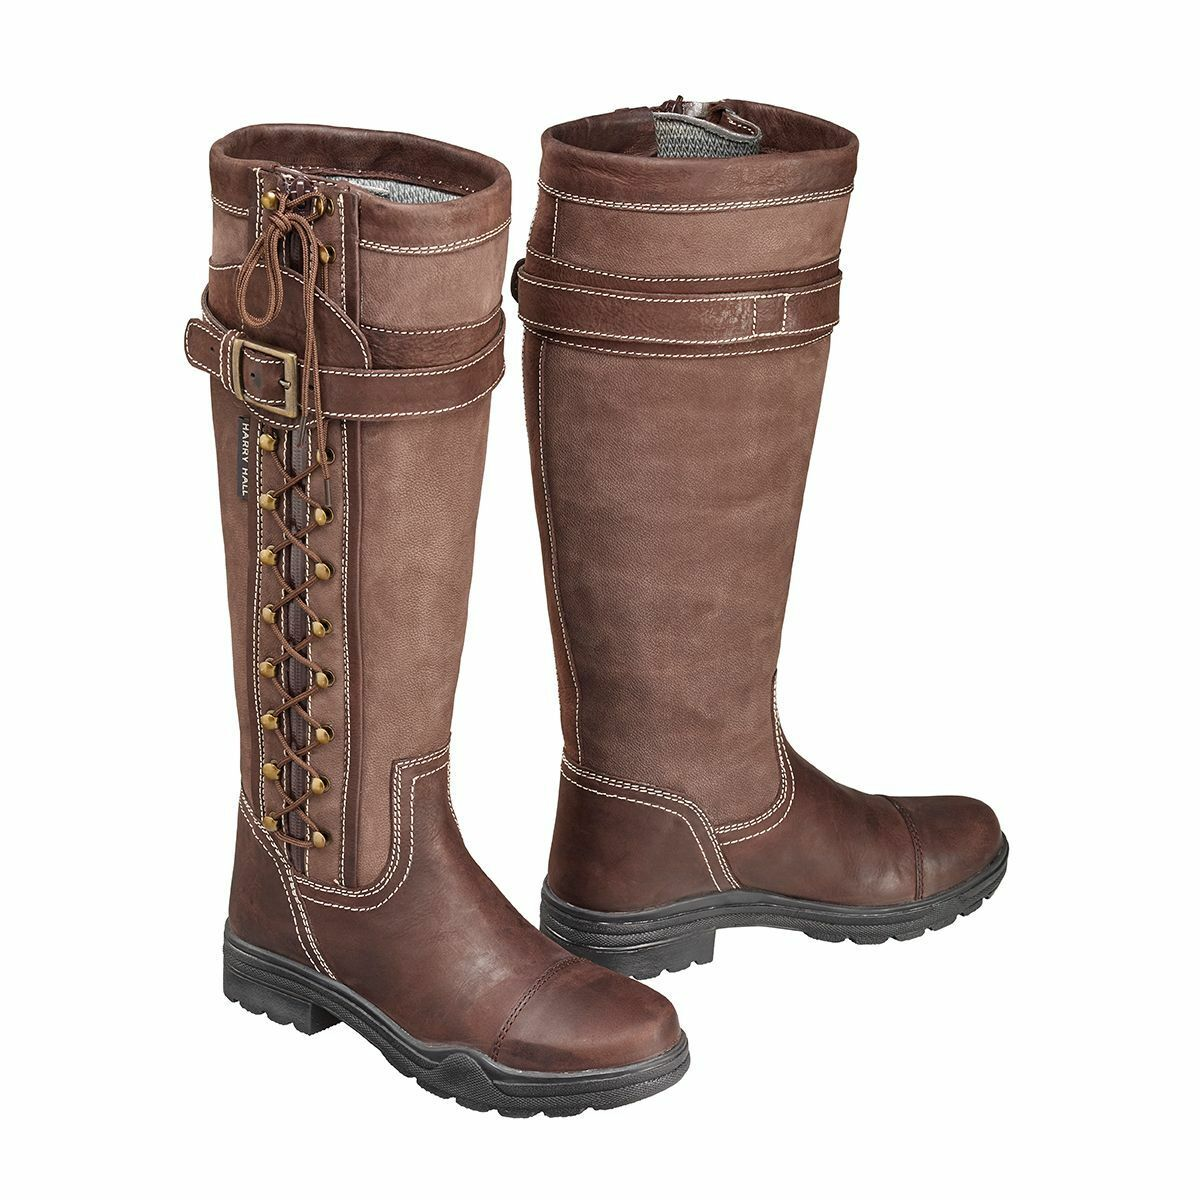 Harry Hall overstone botas de cuero largo país, Impermeable, caminar,